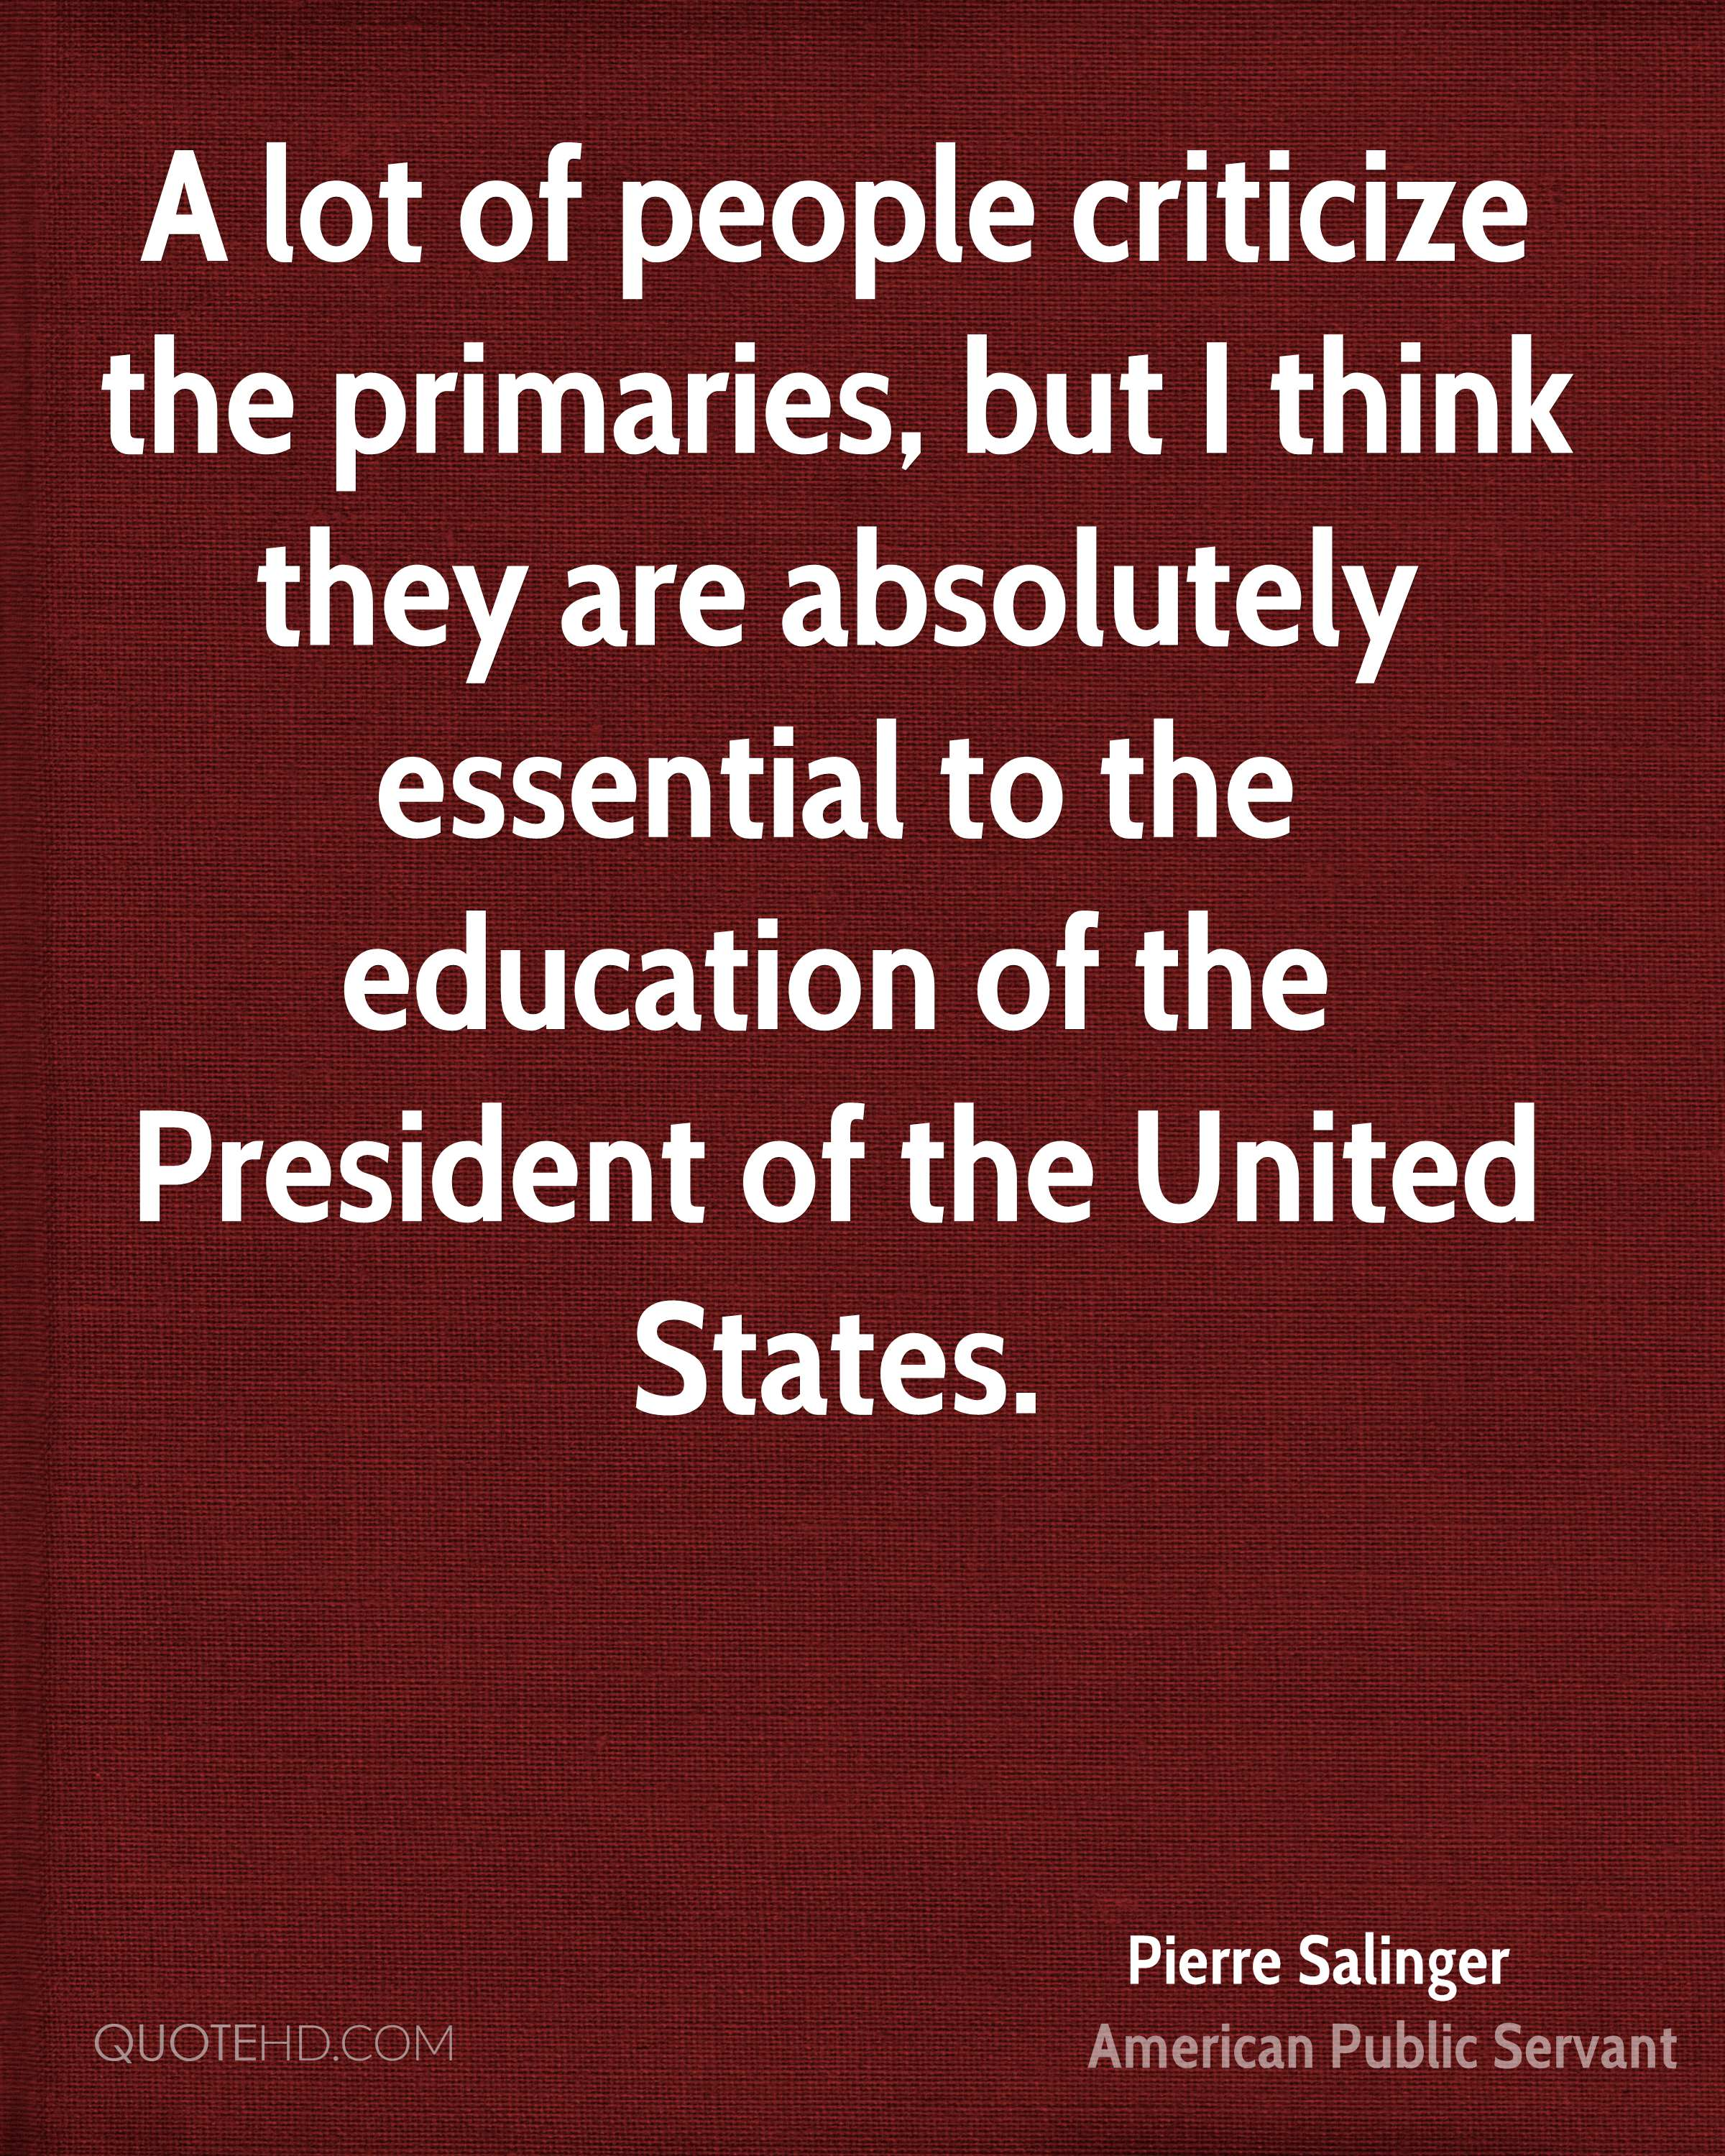 A lot of people criticize the primaries, but I think they are absolutely essential to the education of the President of the United States.